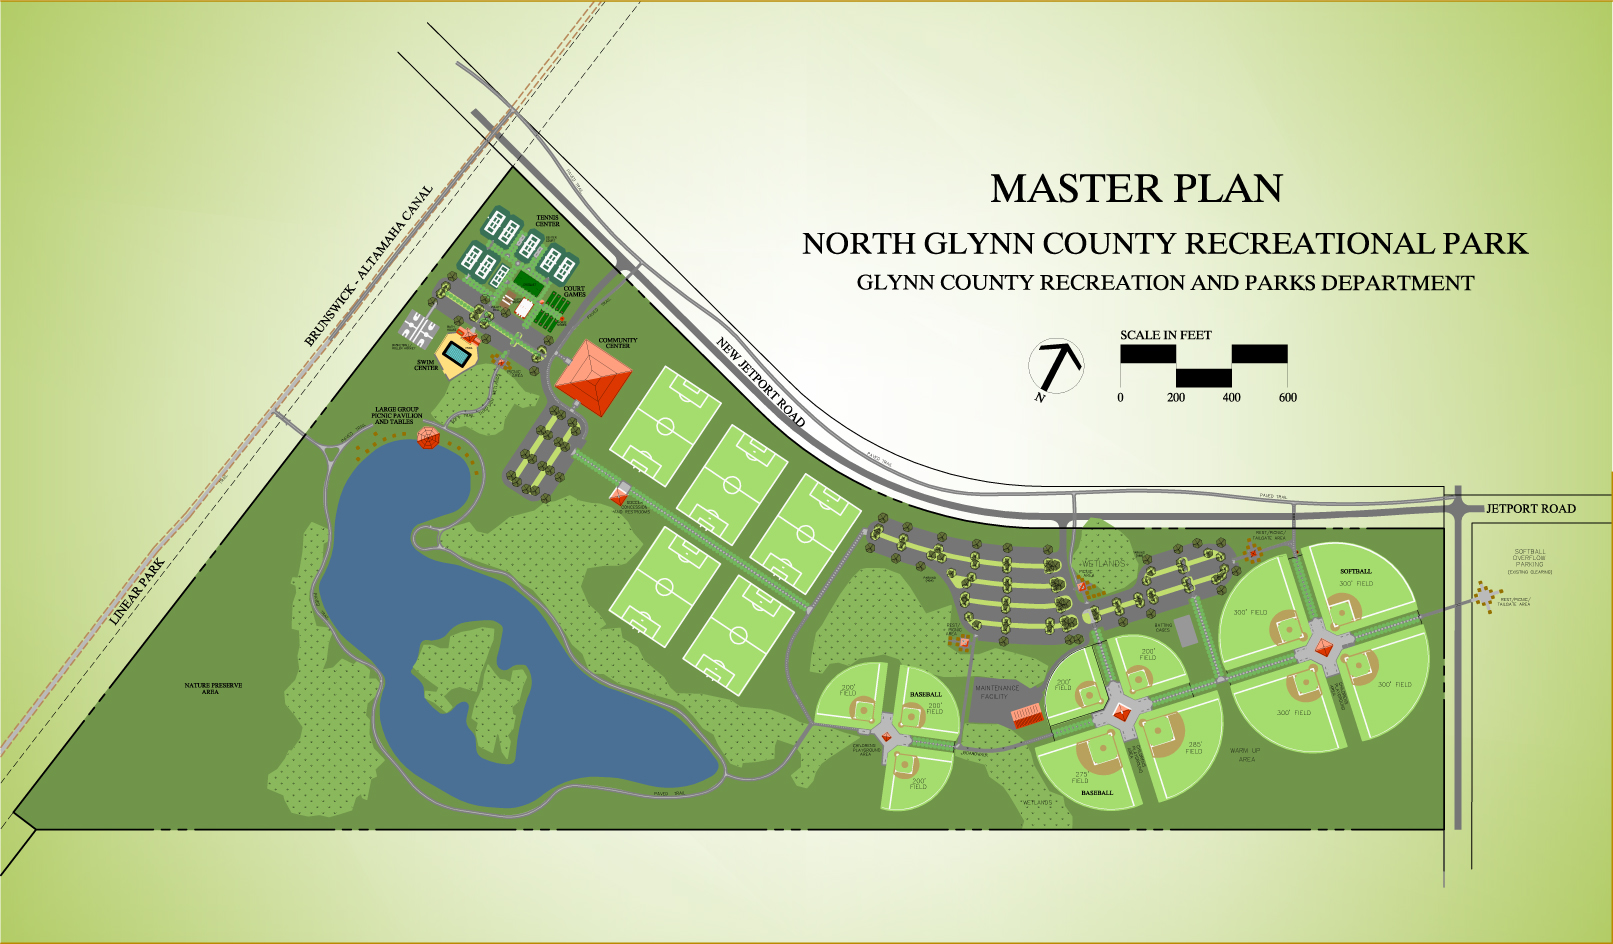 Master Plan, North Glynn County Recreational Park